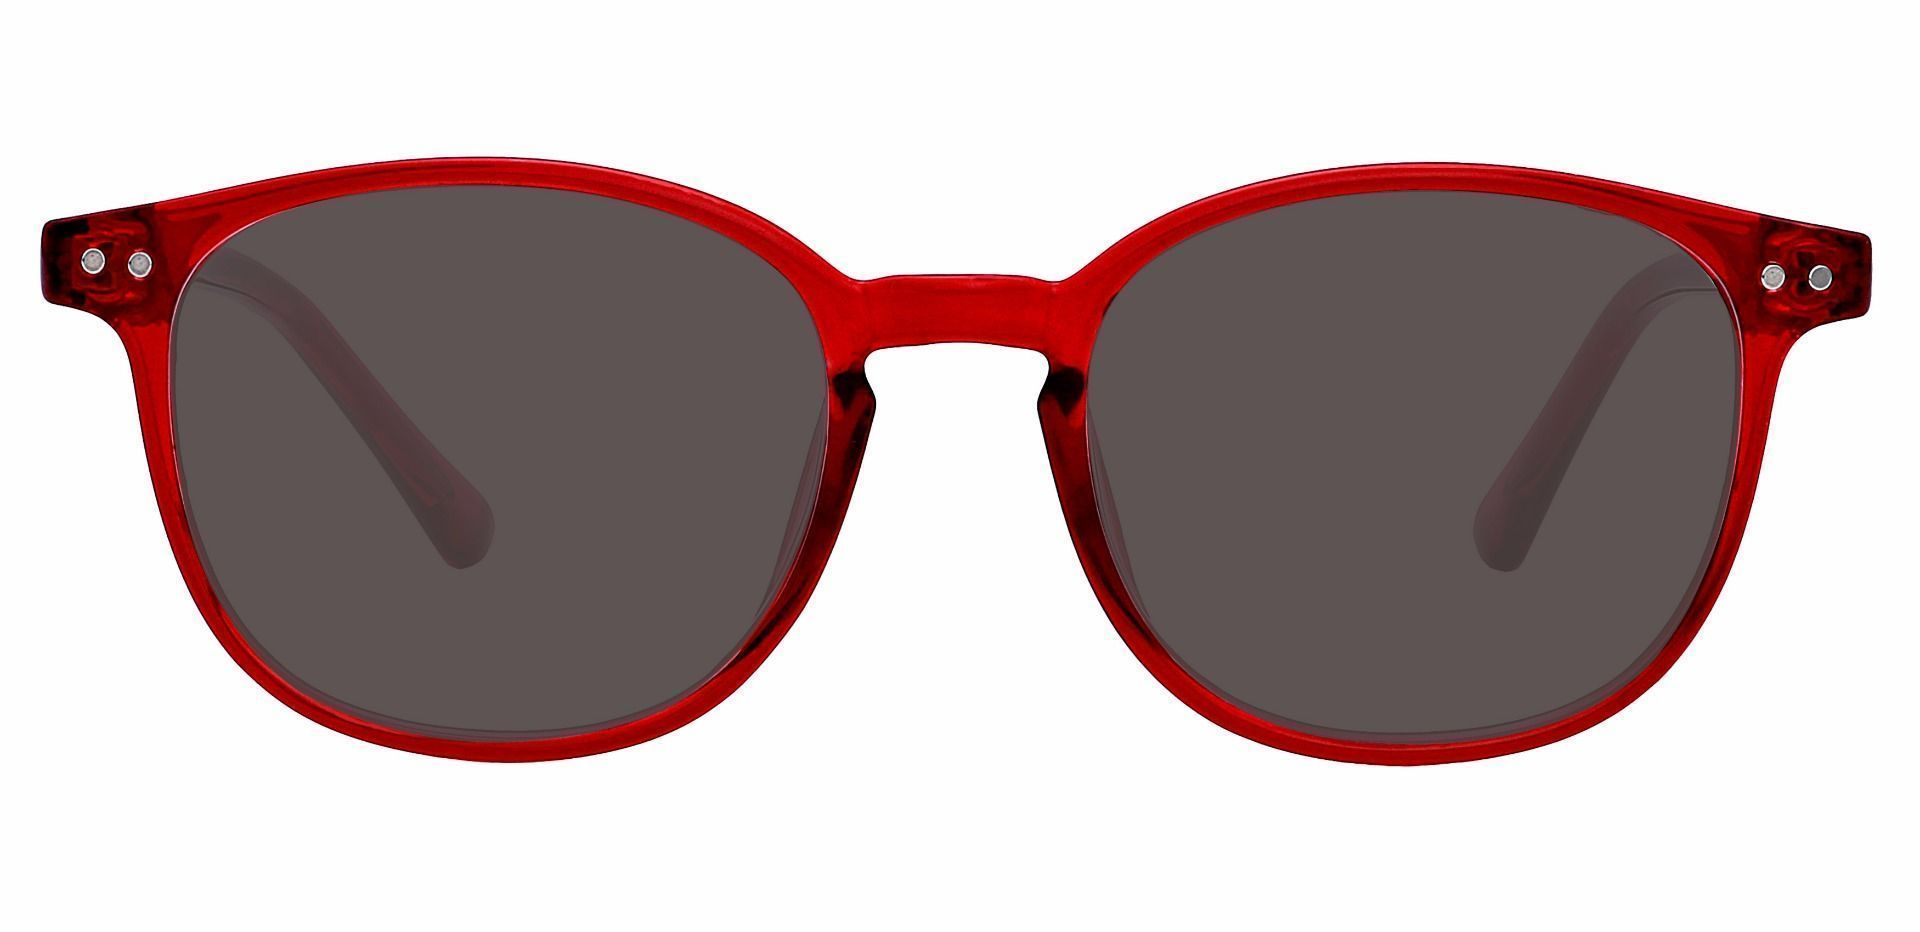 Holstein Oval Prescription Sunglasses - Red Frame With Gray Lenses